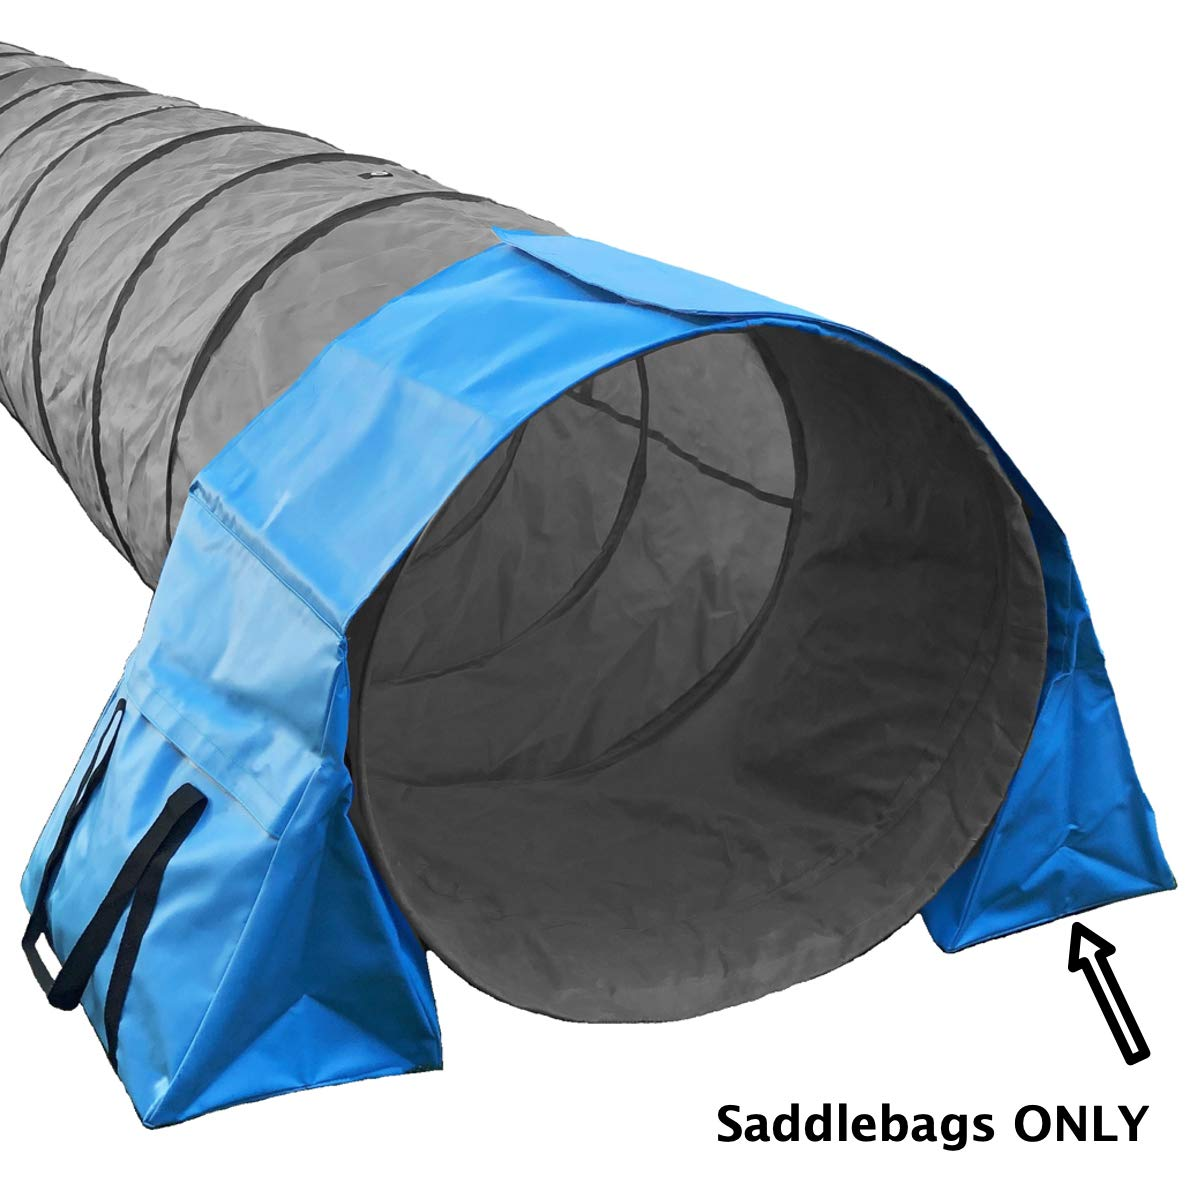 Rise8 Studios Non-Constricting Saddlebags for Stabilizing Dog Agility Tunnel Equipment Indoor or Outdoor, Blue Color (1 Pack)